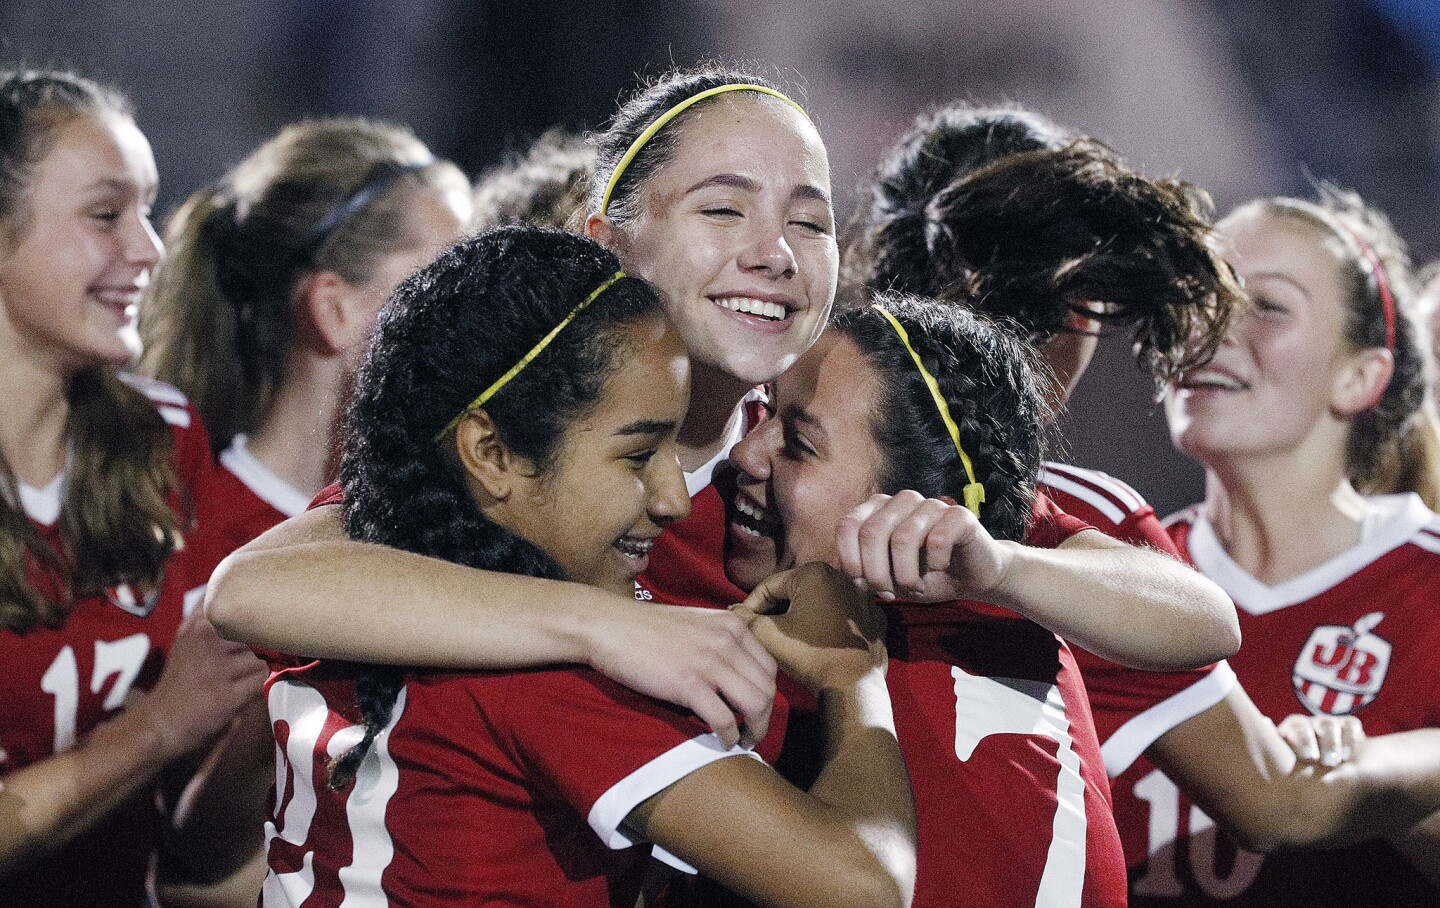 Photo Gallery: Burroughs girls' soccer wins Pacific League title by defeating Burbank in rival game